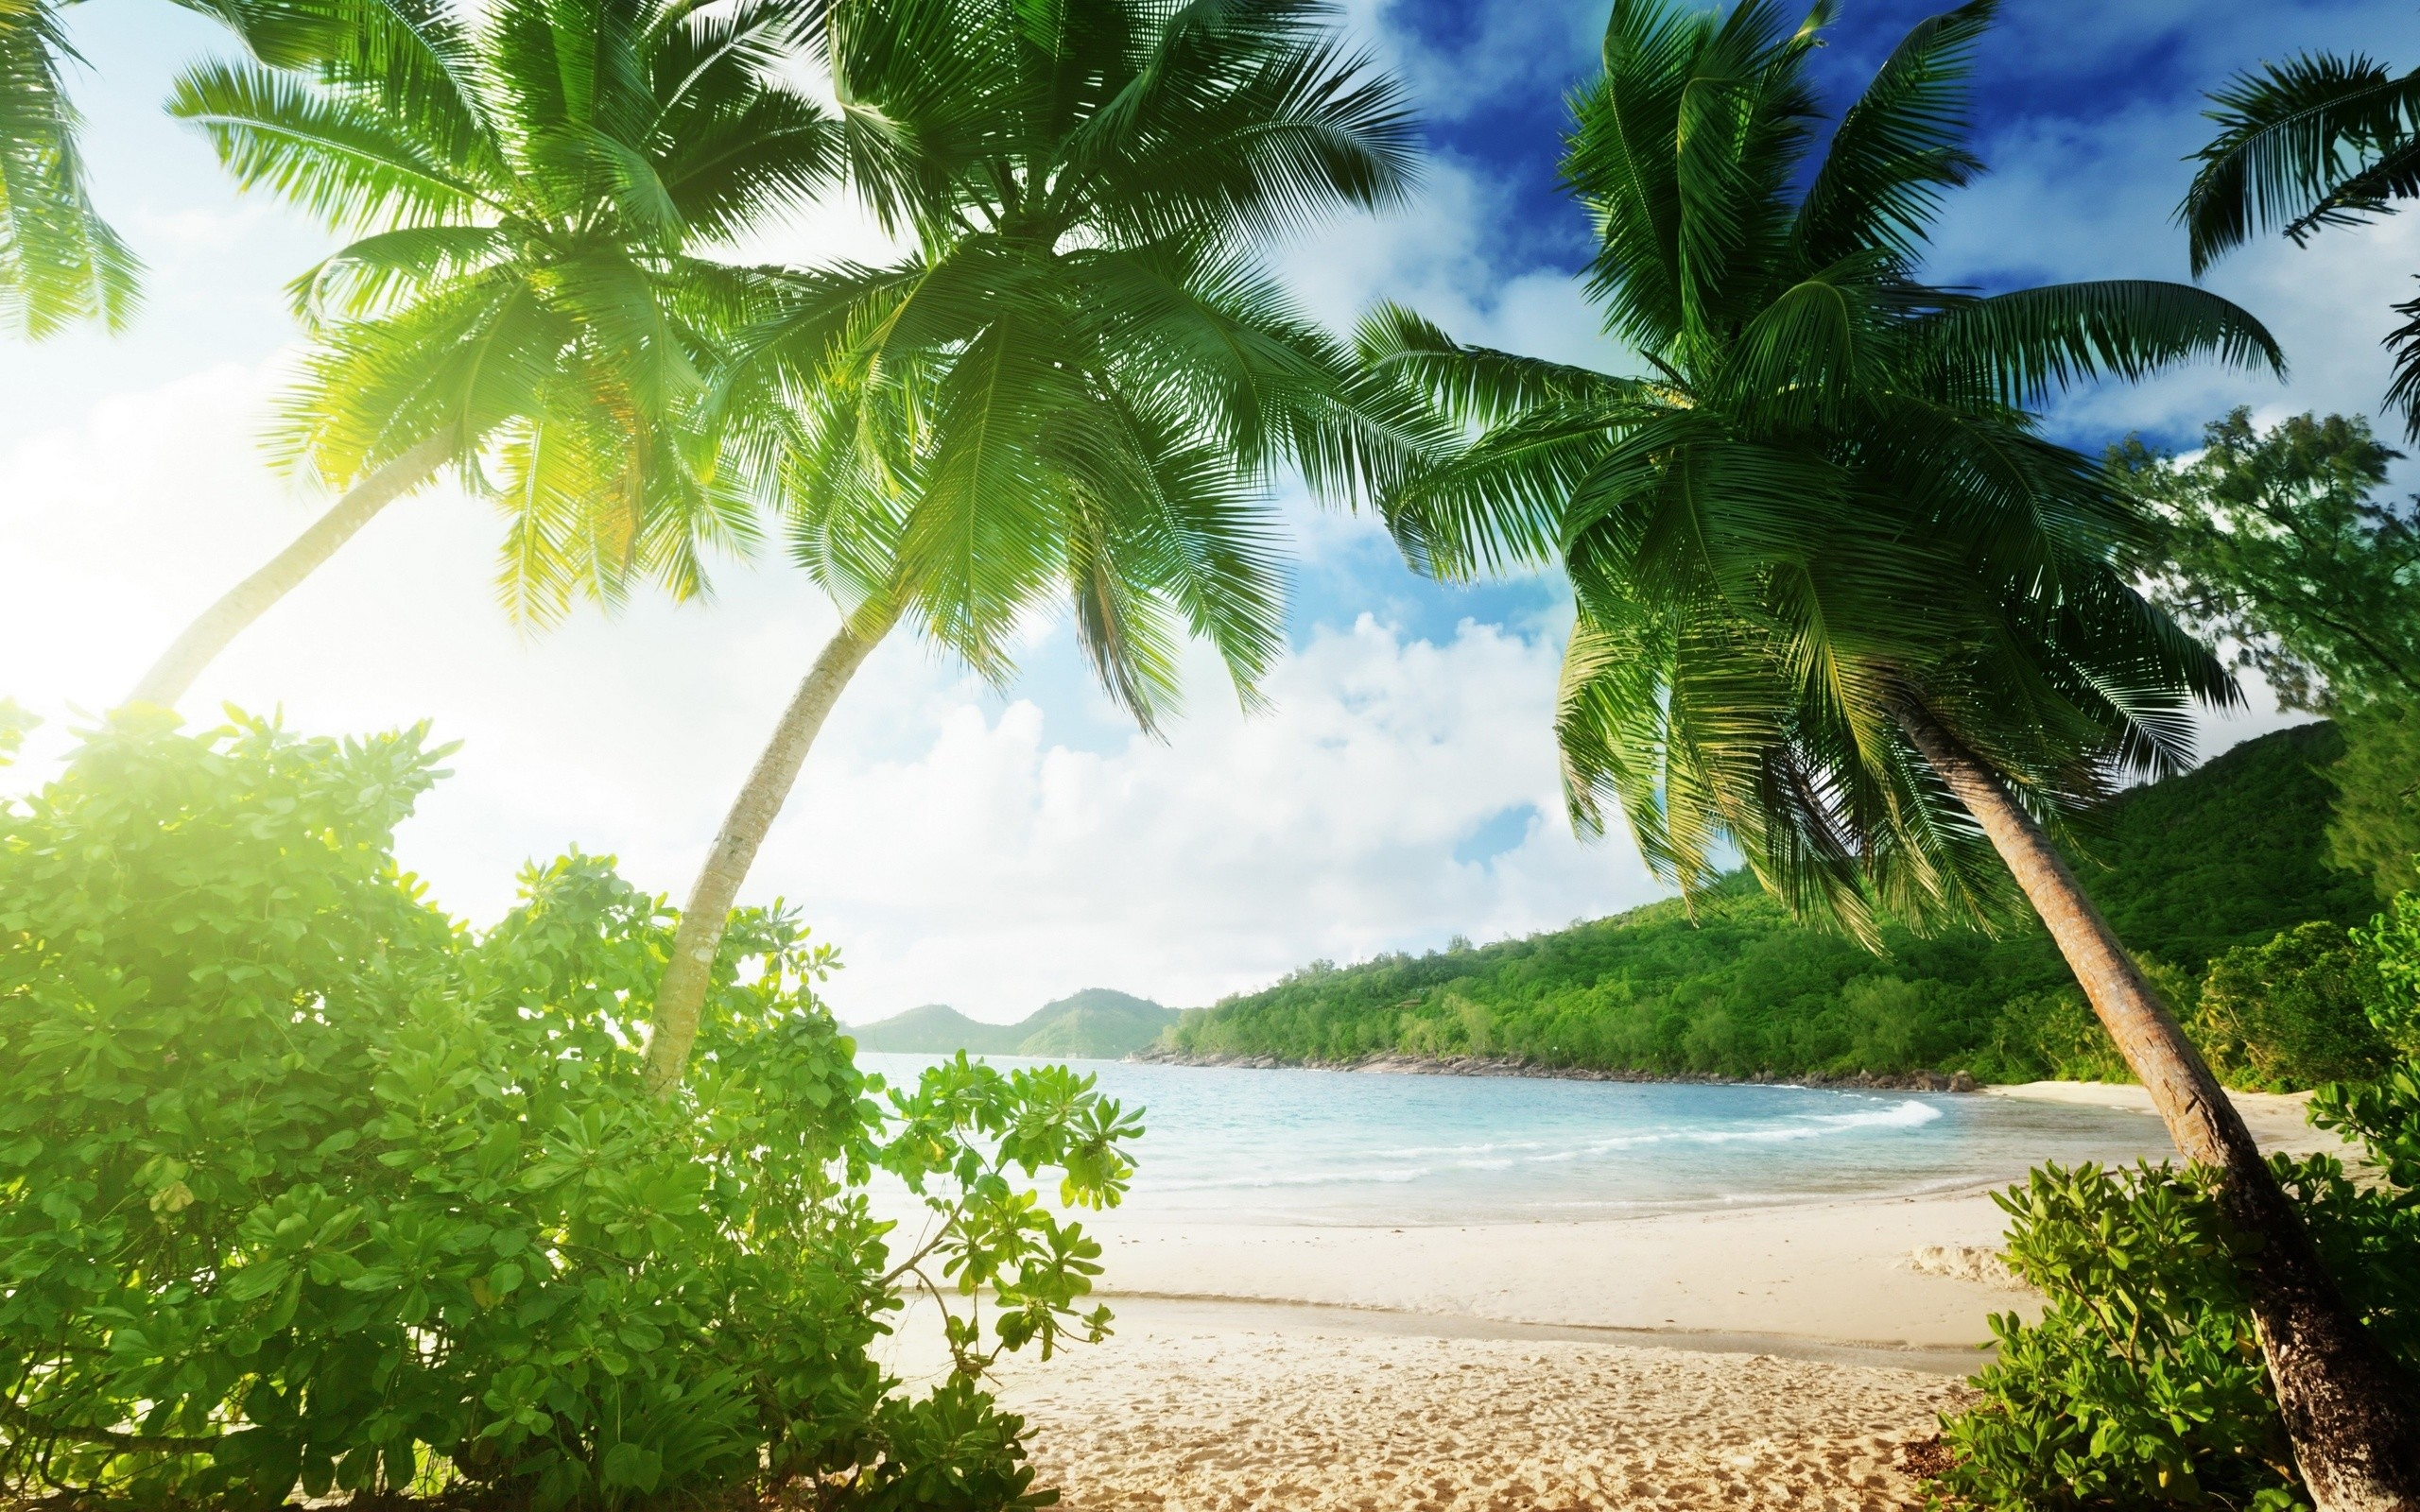 2560x1600 Water Resources, Shore, Palm Tree, Window, Caribbean Wallpaper in   Resolution